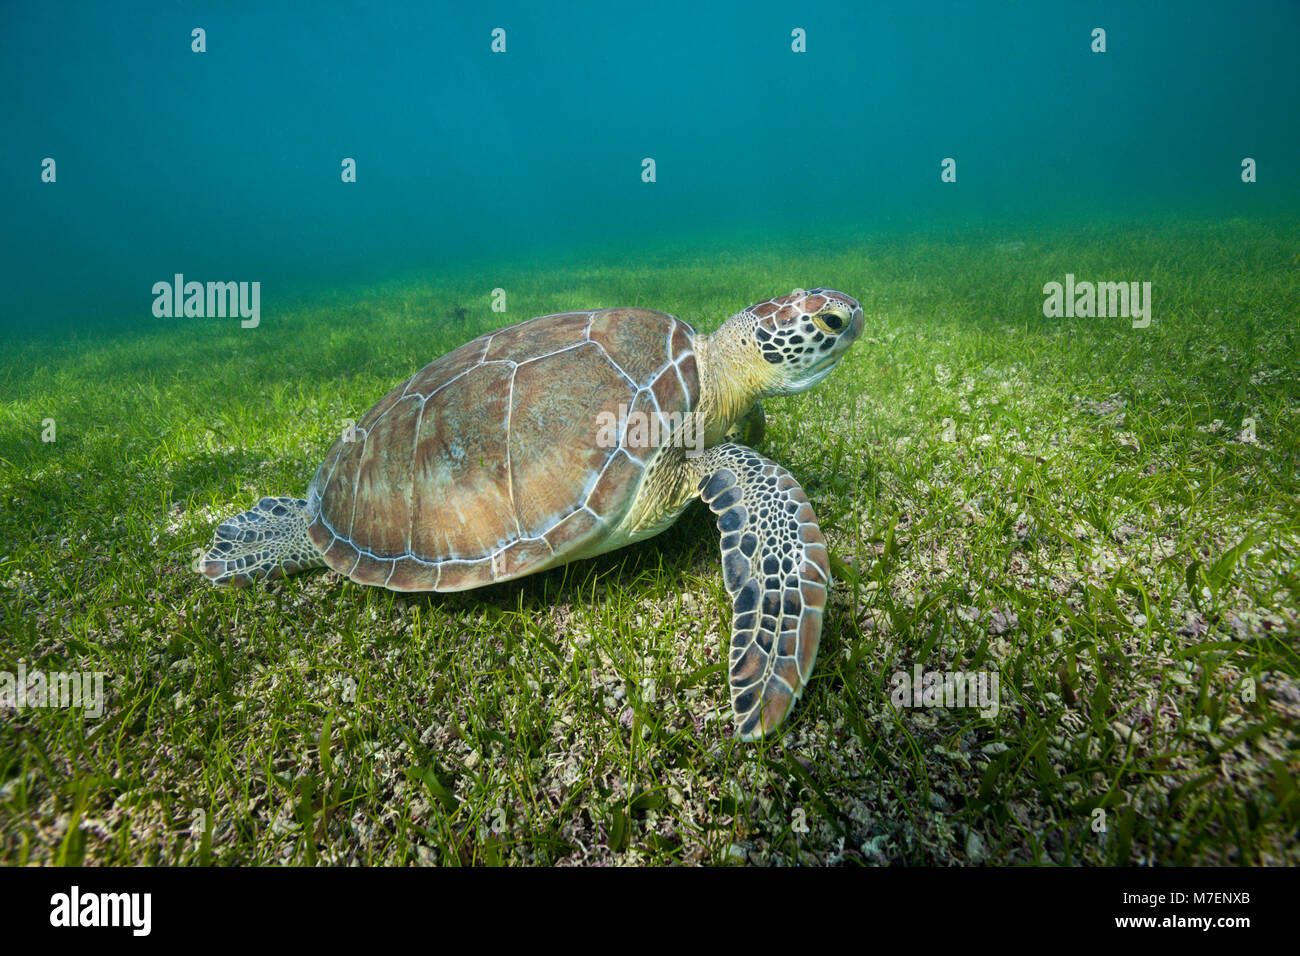 Tortue verte, Chelonia mydas, Akumal, Tulum, Mexique Photo Stock